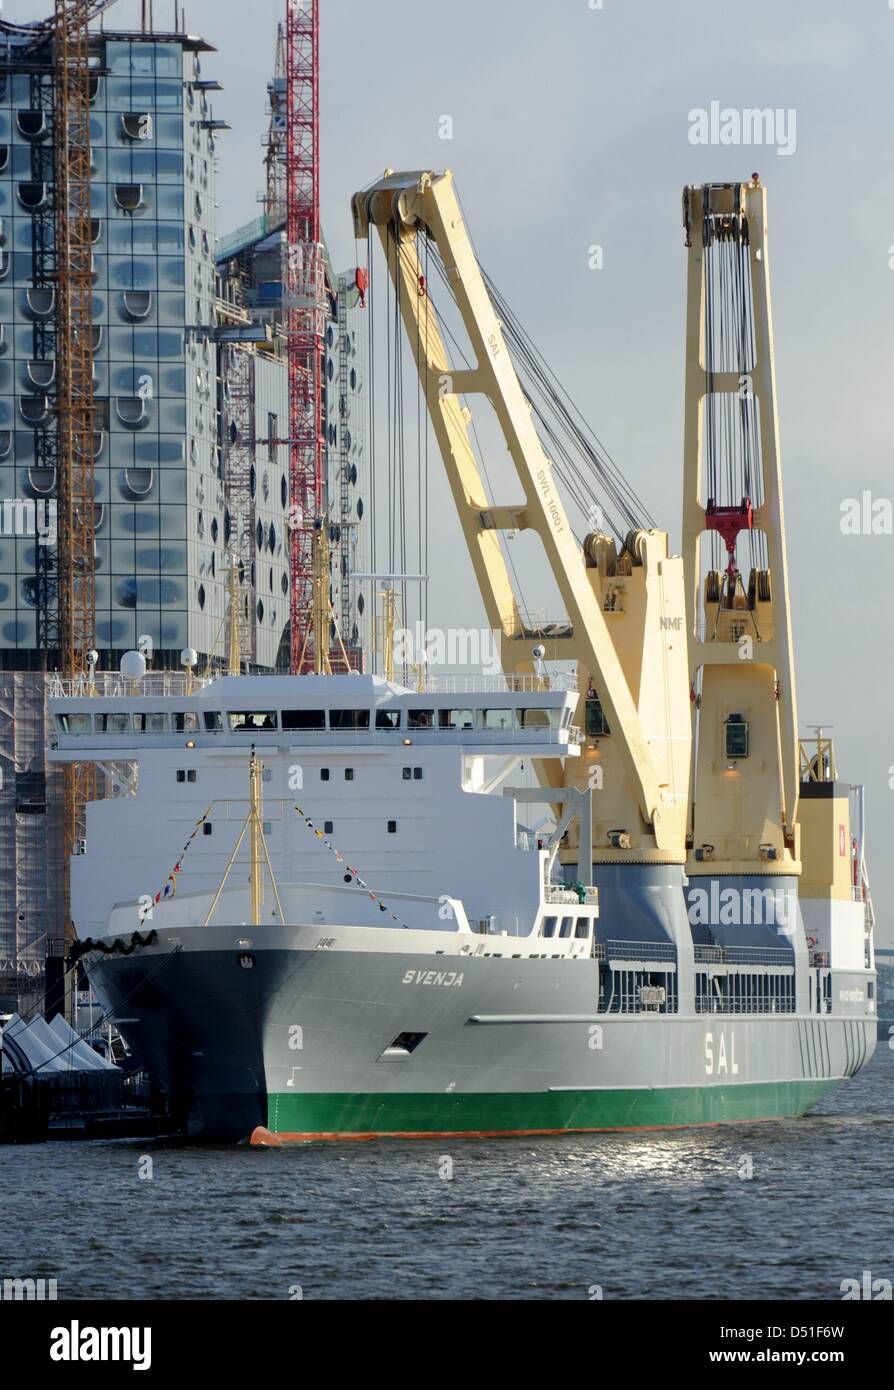 The new heavy lift ship MV 'Svenja' of the shipping company SAL (Schiffahrtskontor Altes Land) lies at the - Stock Image